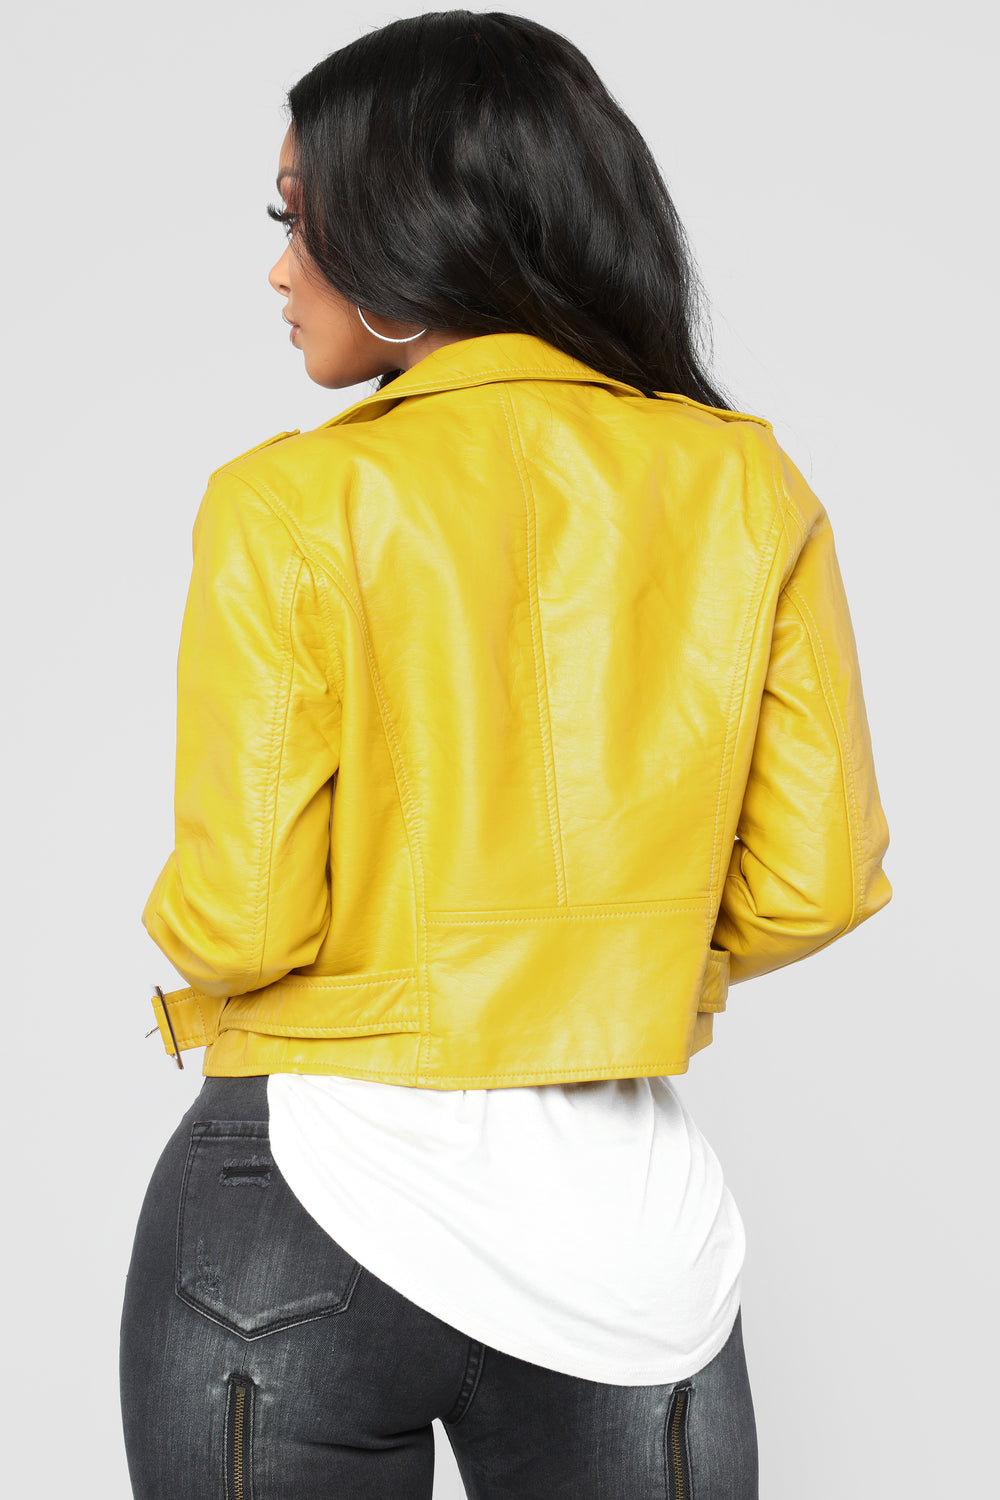 Remind Me Later Faux Leather Jacket - Mustard